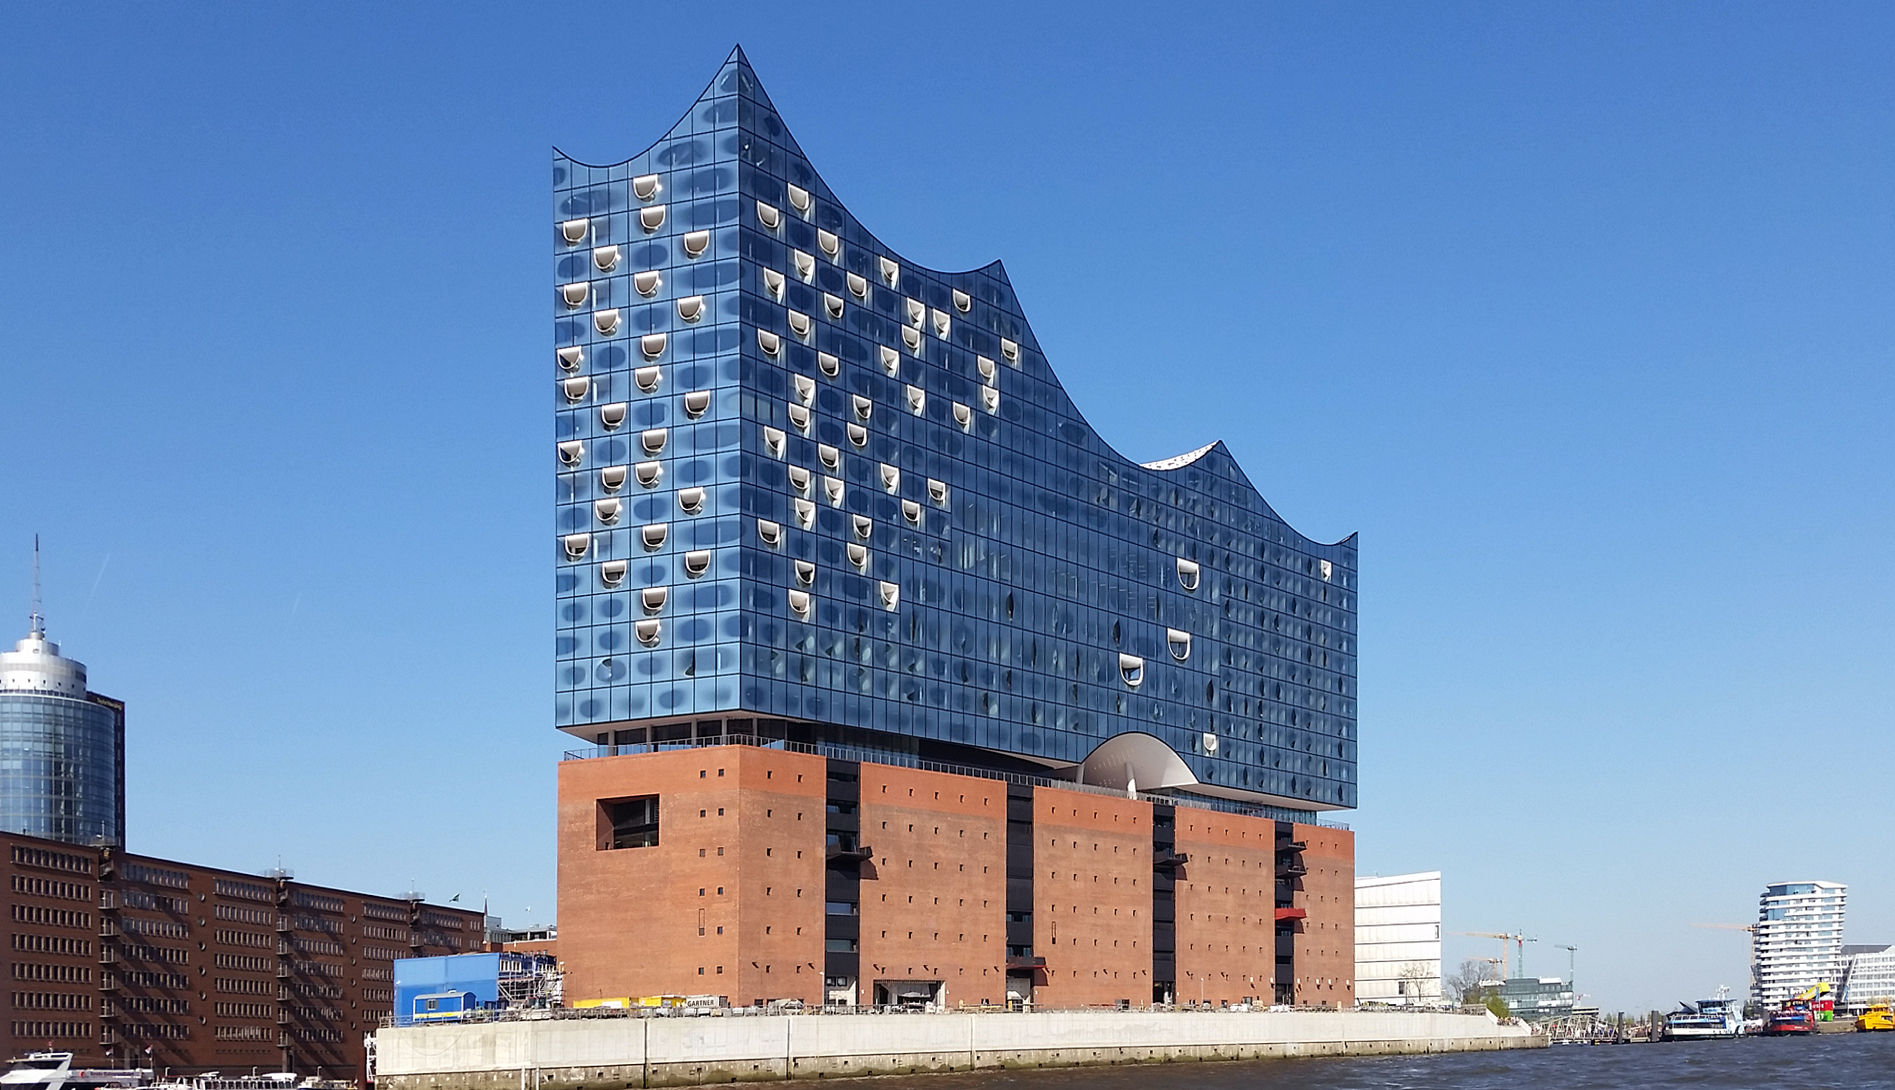 Elbphilharmonie wikiwand for Architecture utopiste